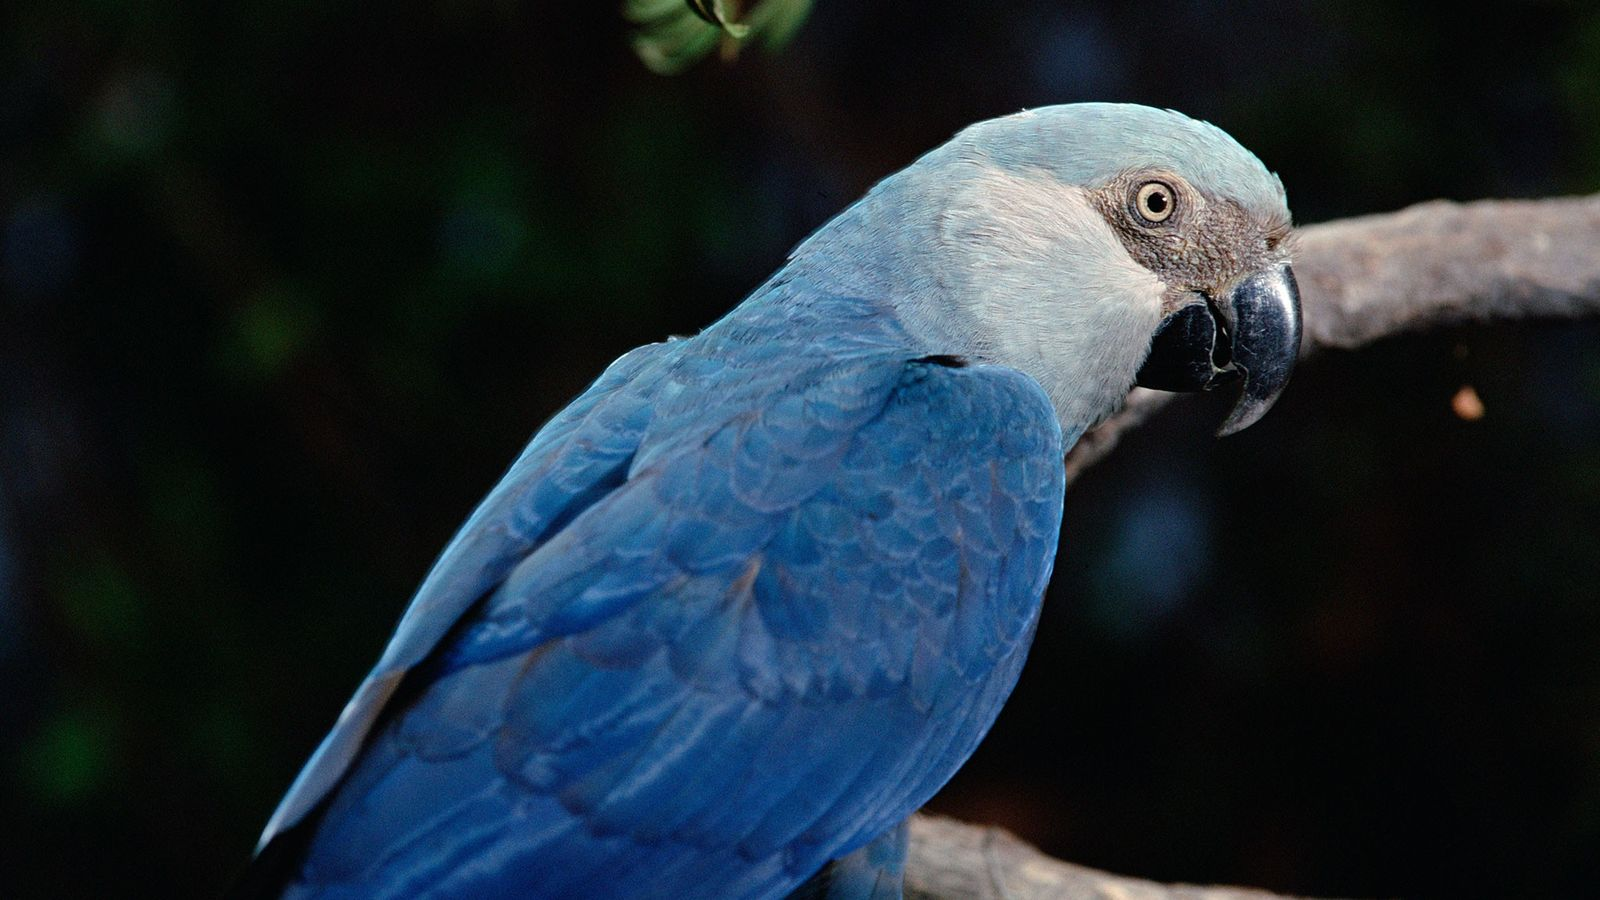 The Spix Macaw, found natively in the Brazilian Amazon, may be extinct in the wild, according ...